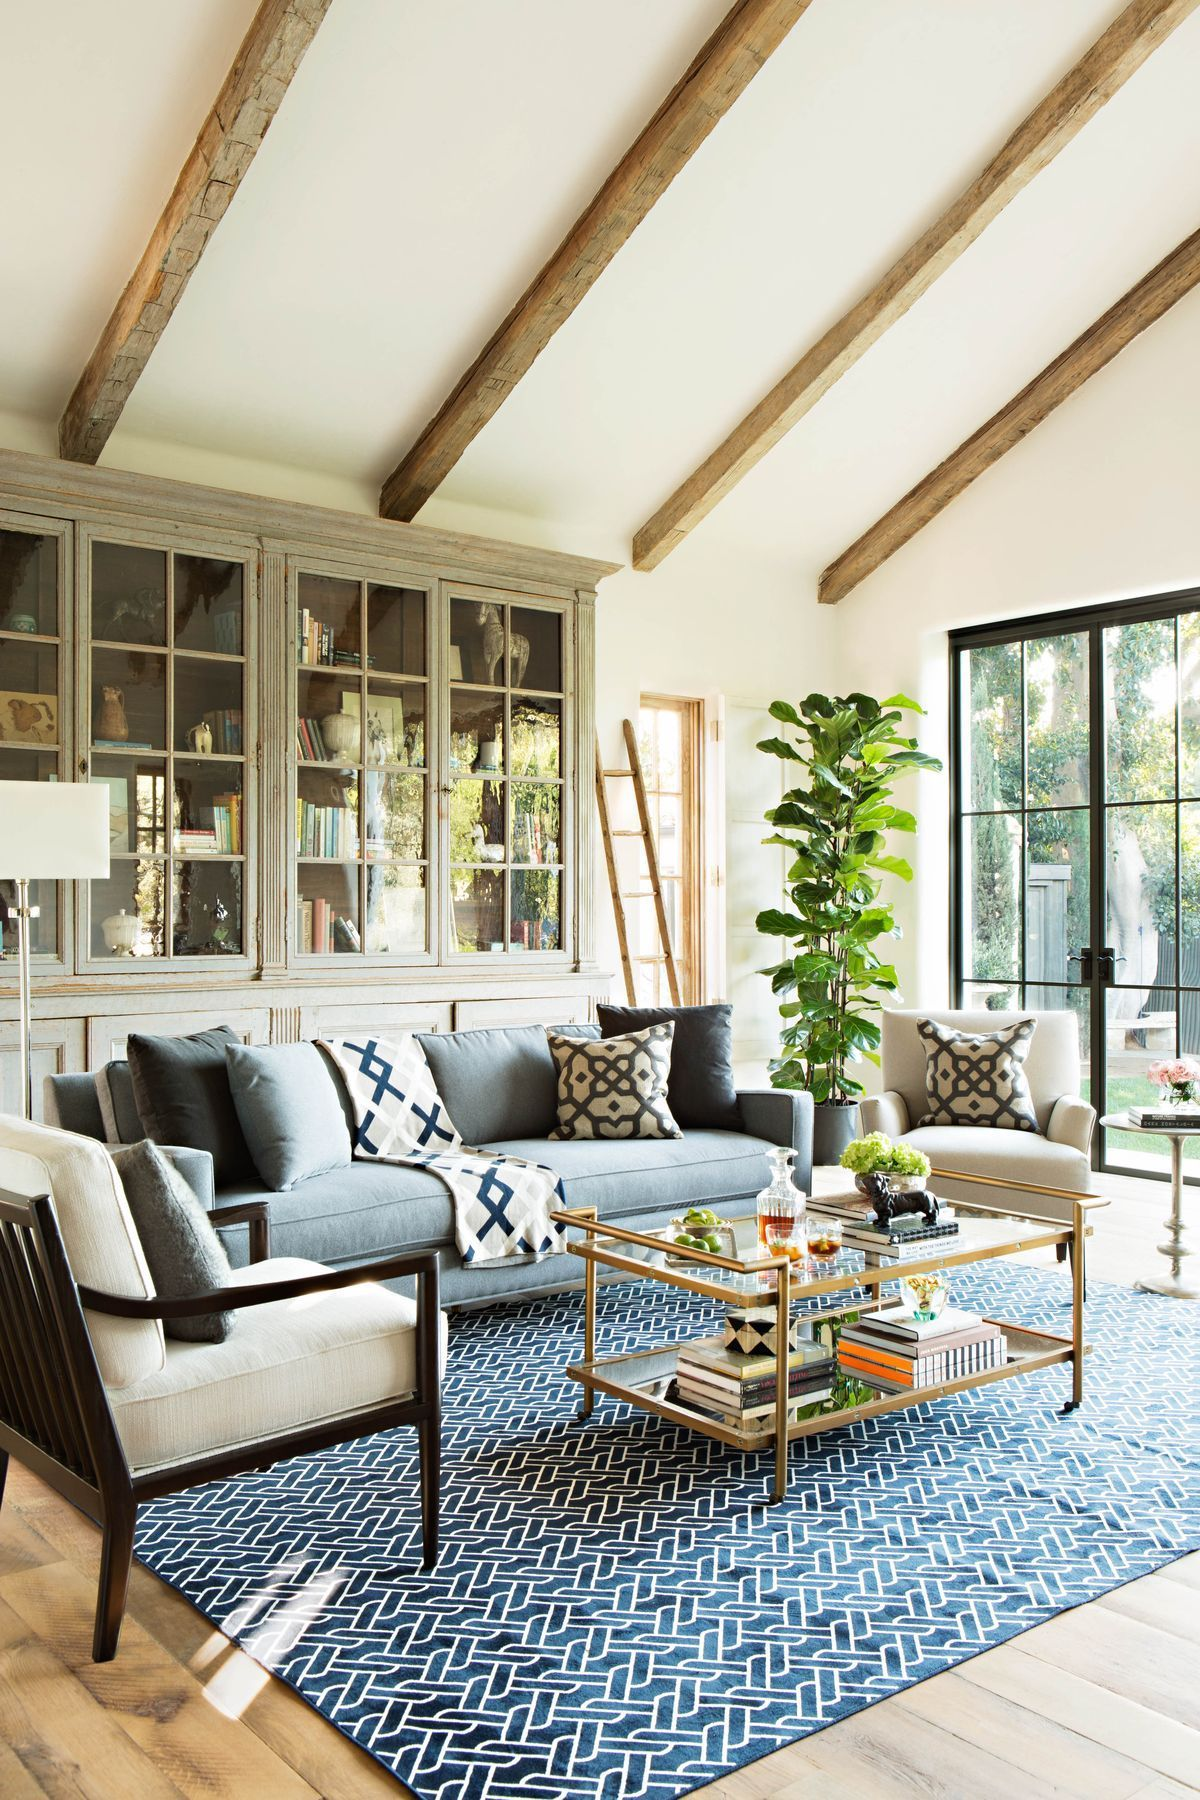 Exposed beams, a built-in glass-front cabinet, and large ...